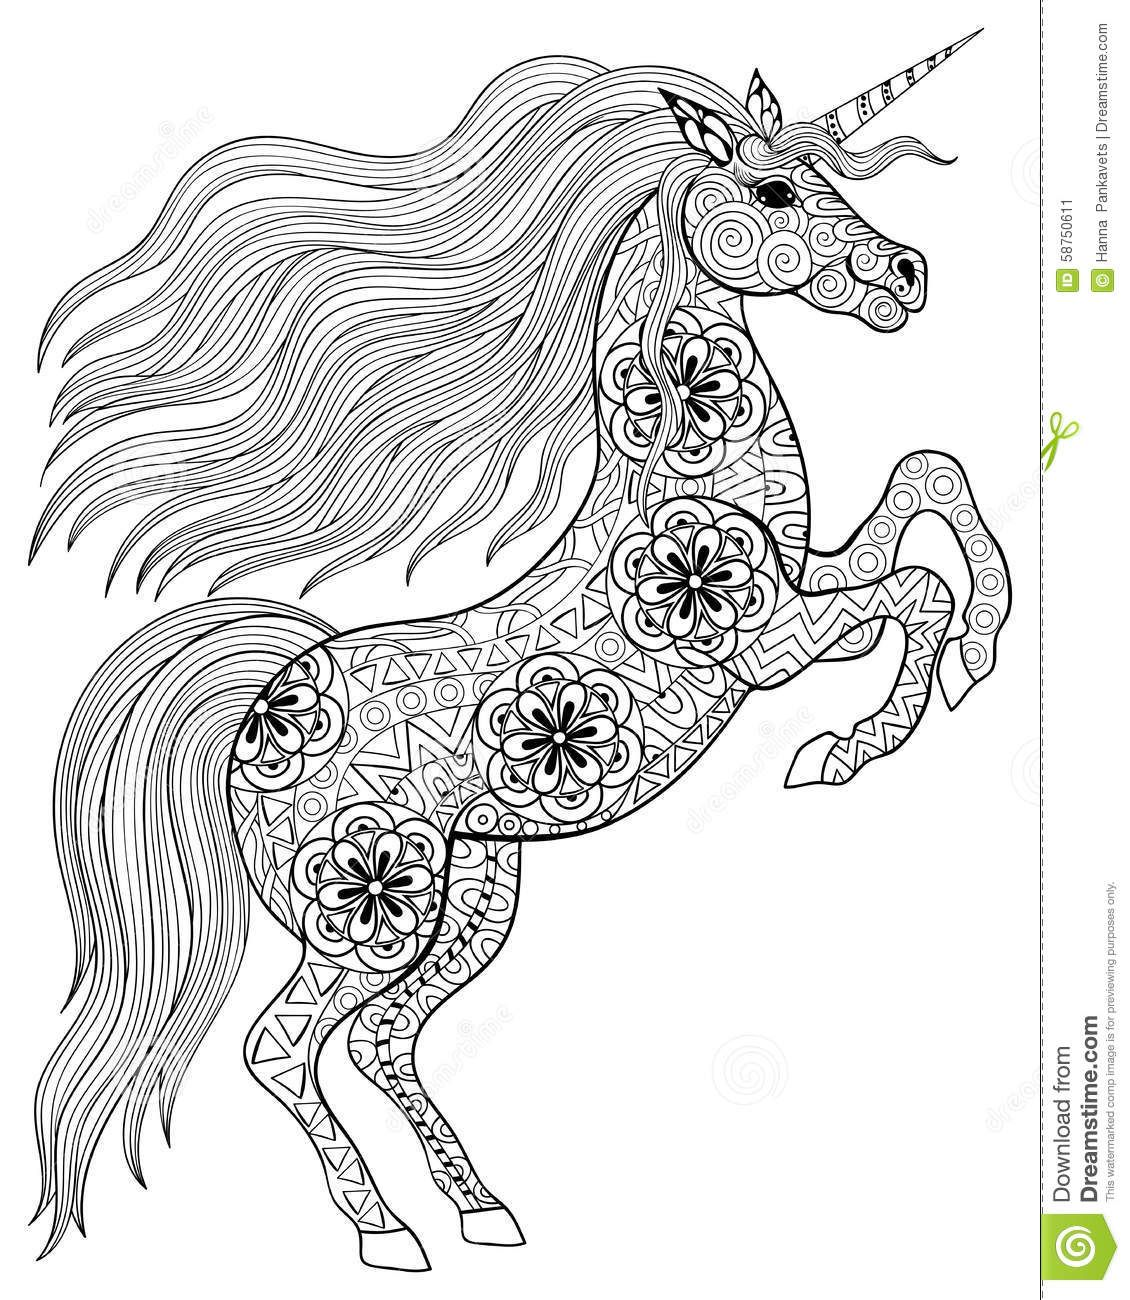 Hard unicorn coloring pages - Hand Drawn Magic Unicorn For Adult Anti Stress Coloring Page Wit Download From Over 37